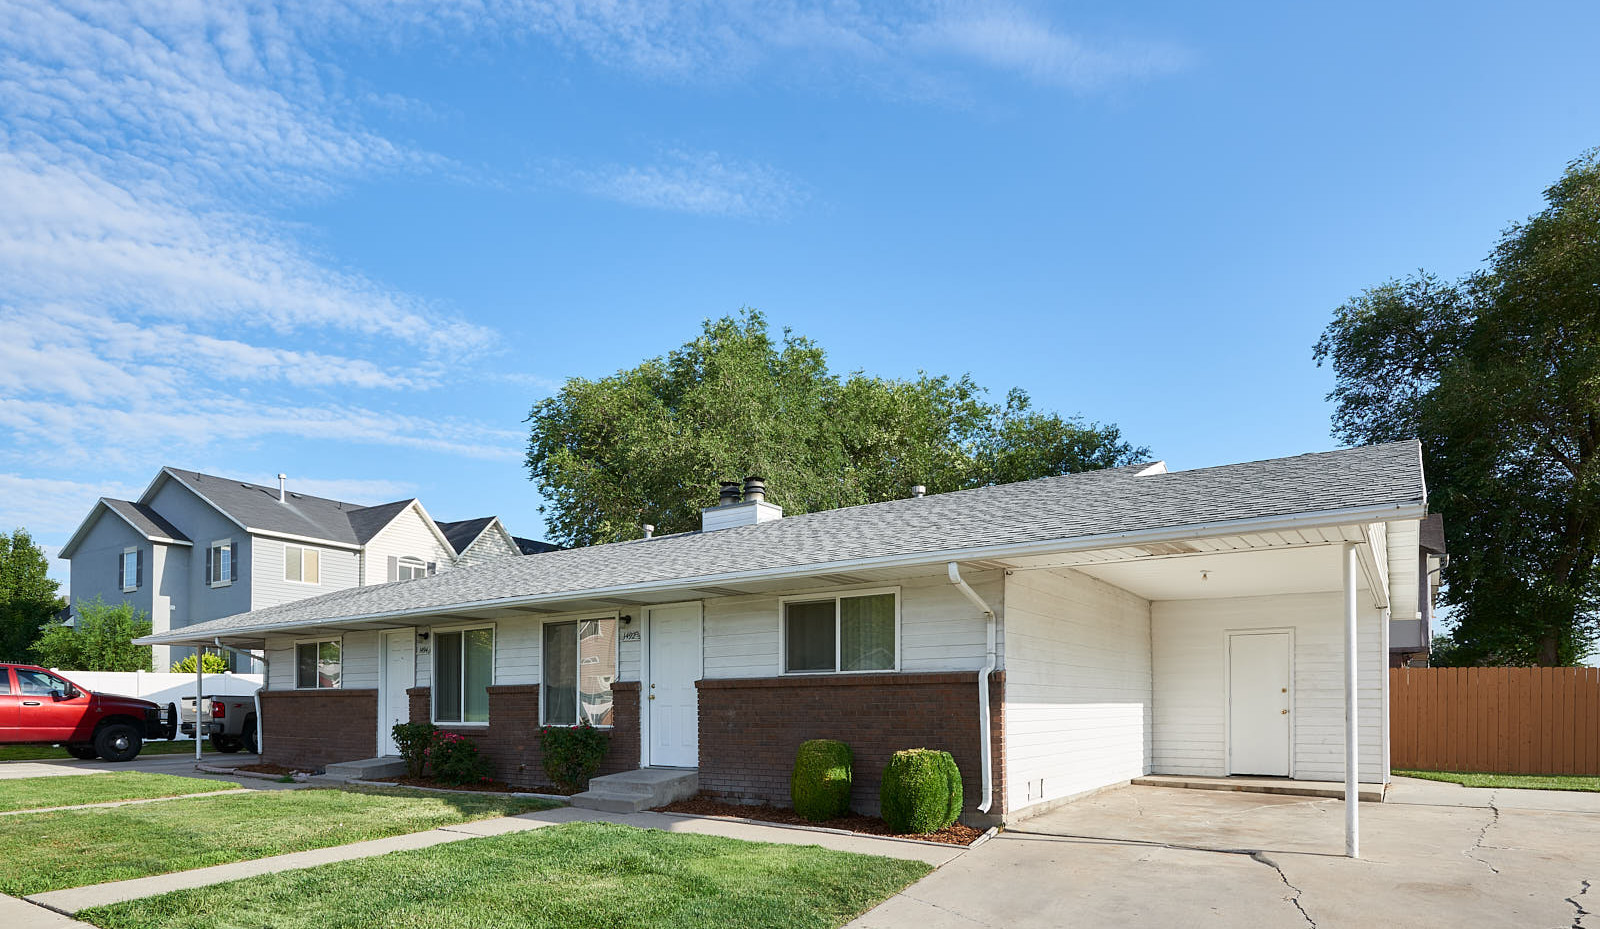 West Valley House Rental